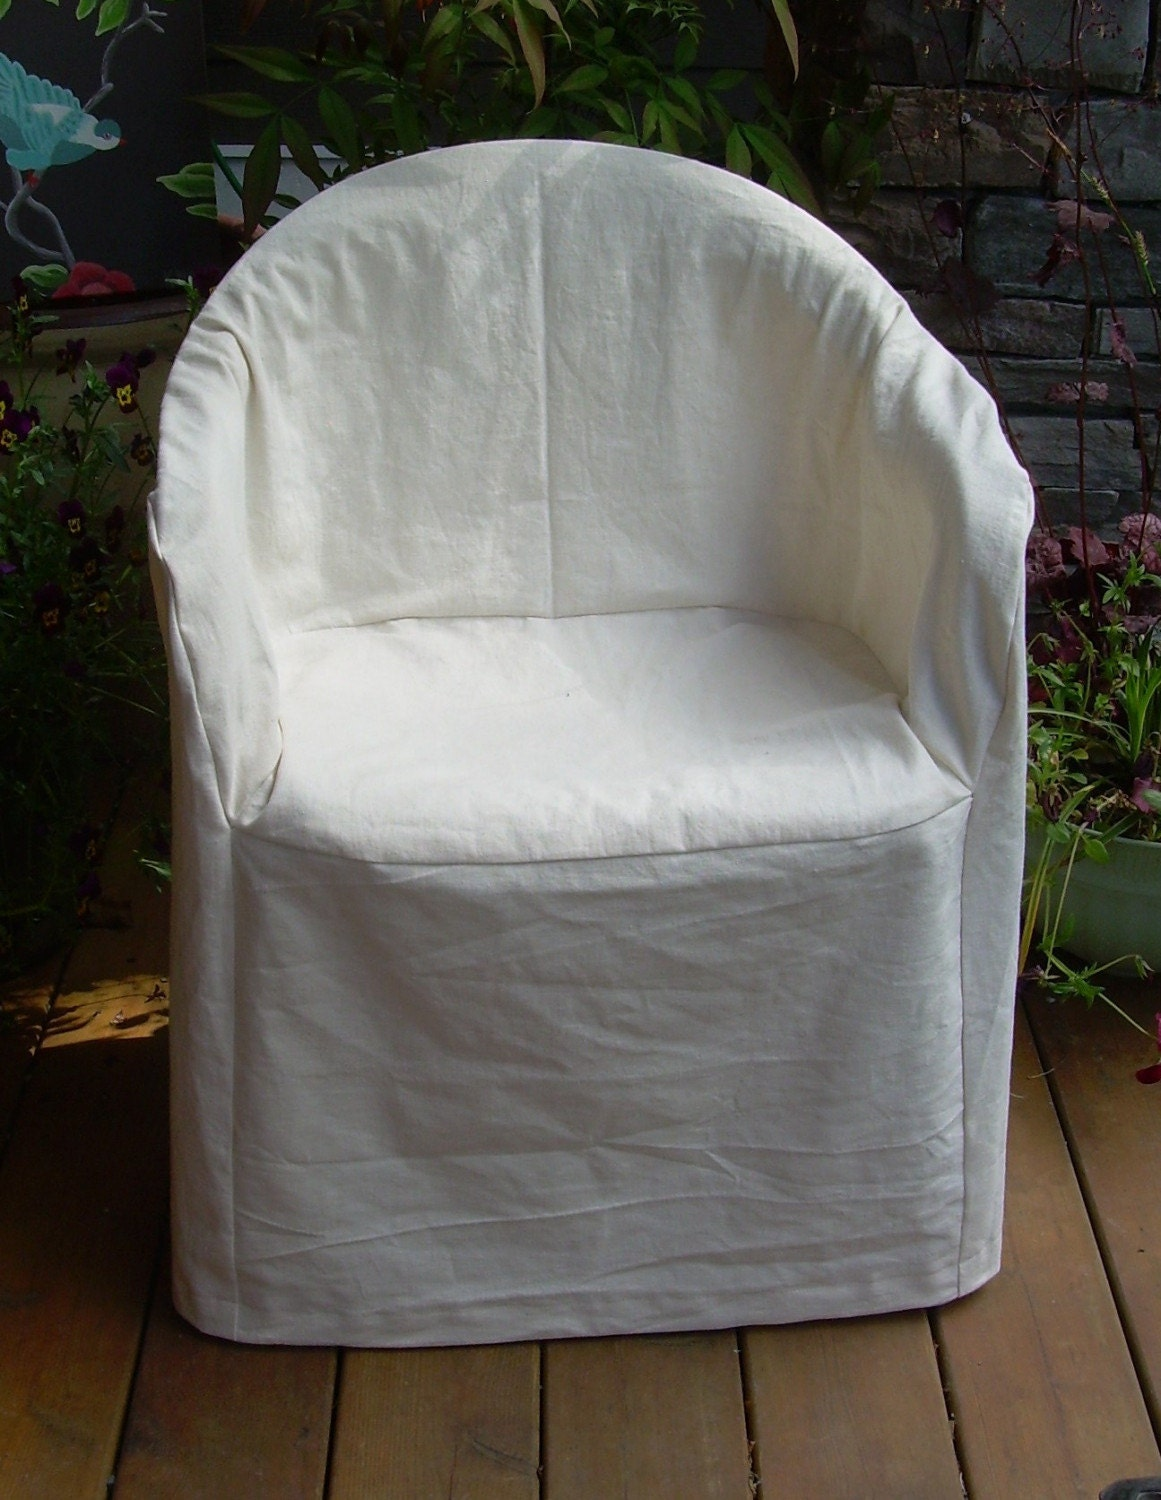 Hemp Cotton Slipcover for Outdoor Plastic Chair